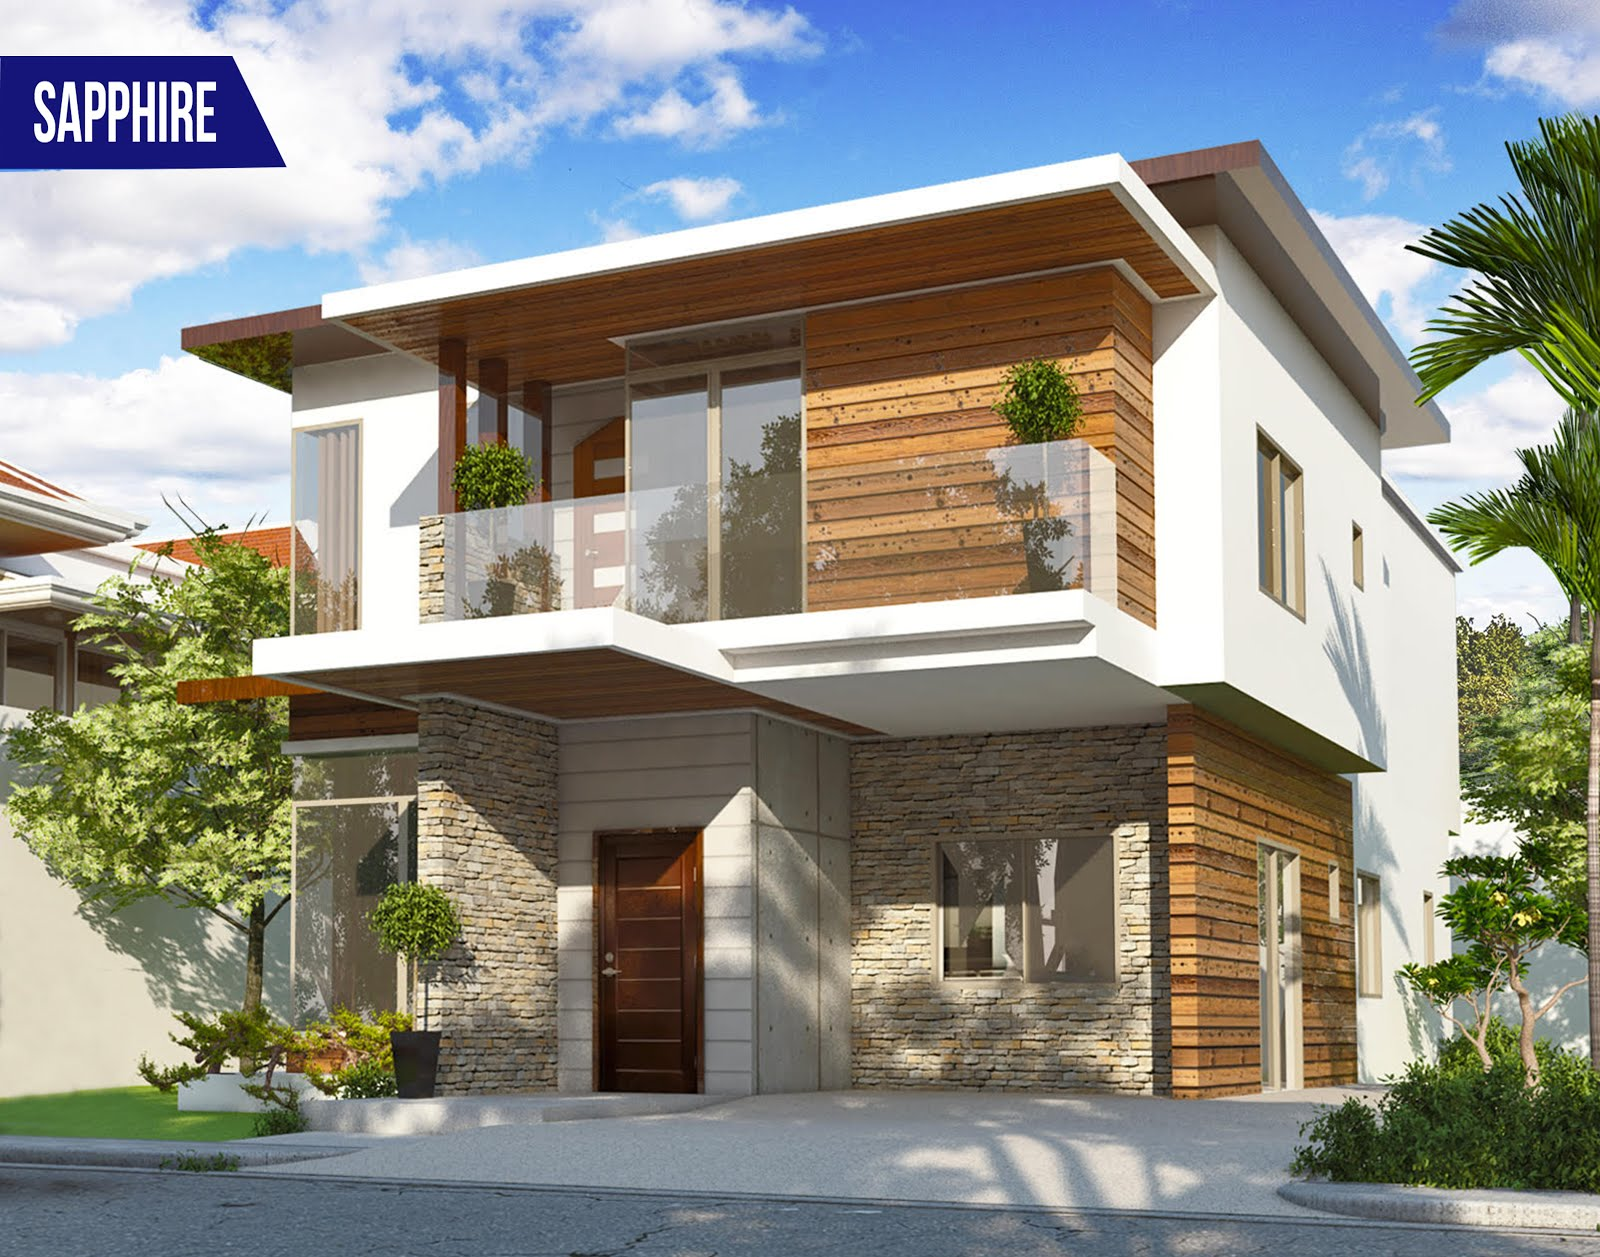 A smart philippine house builder the basics of latest for Latest house designs